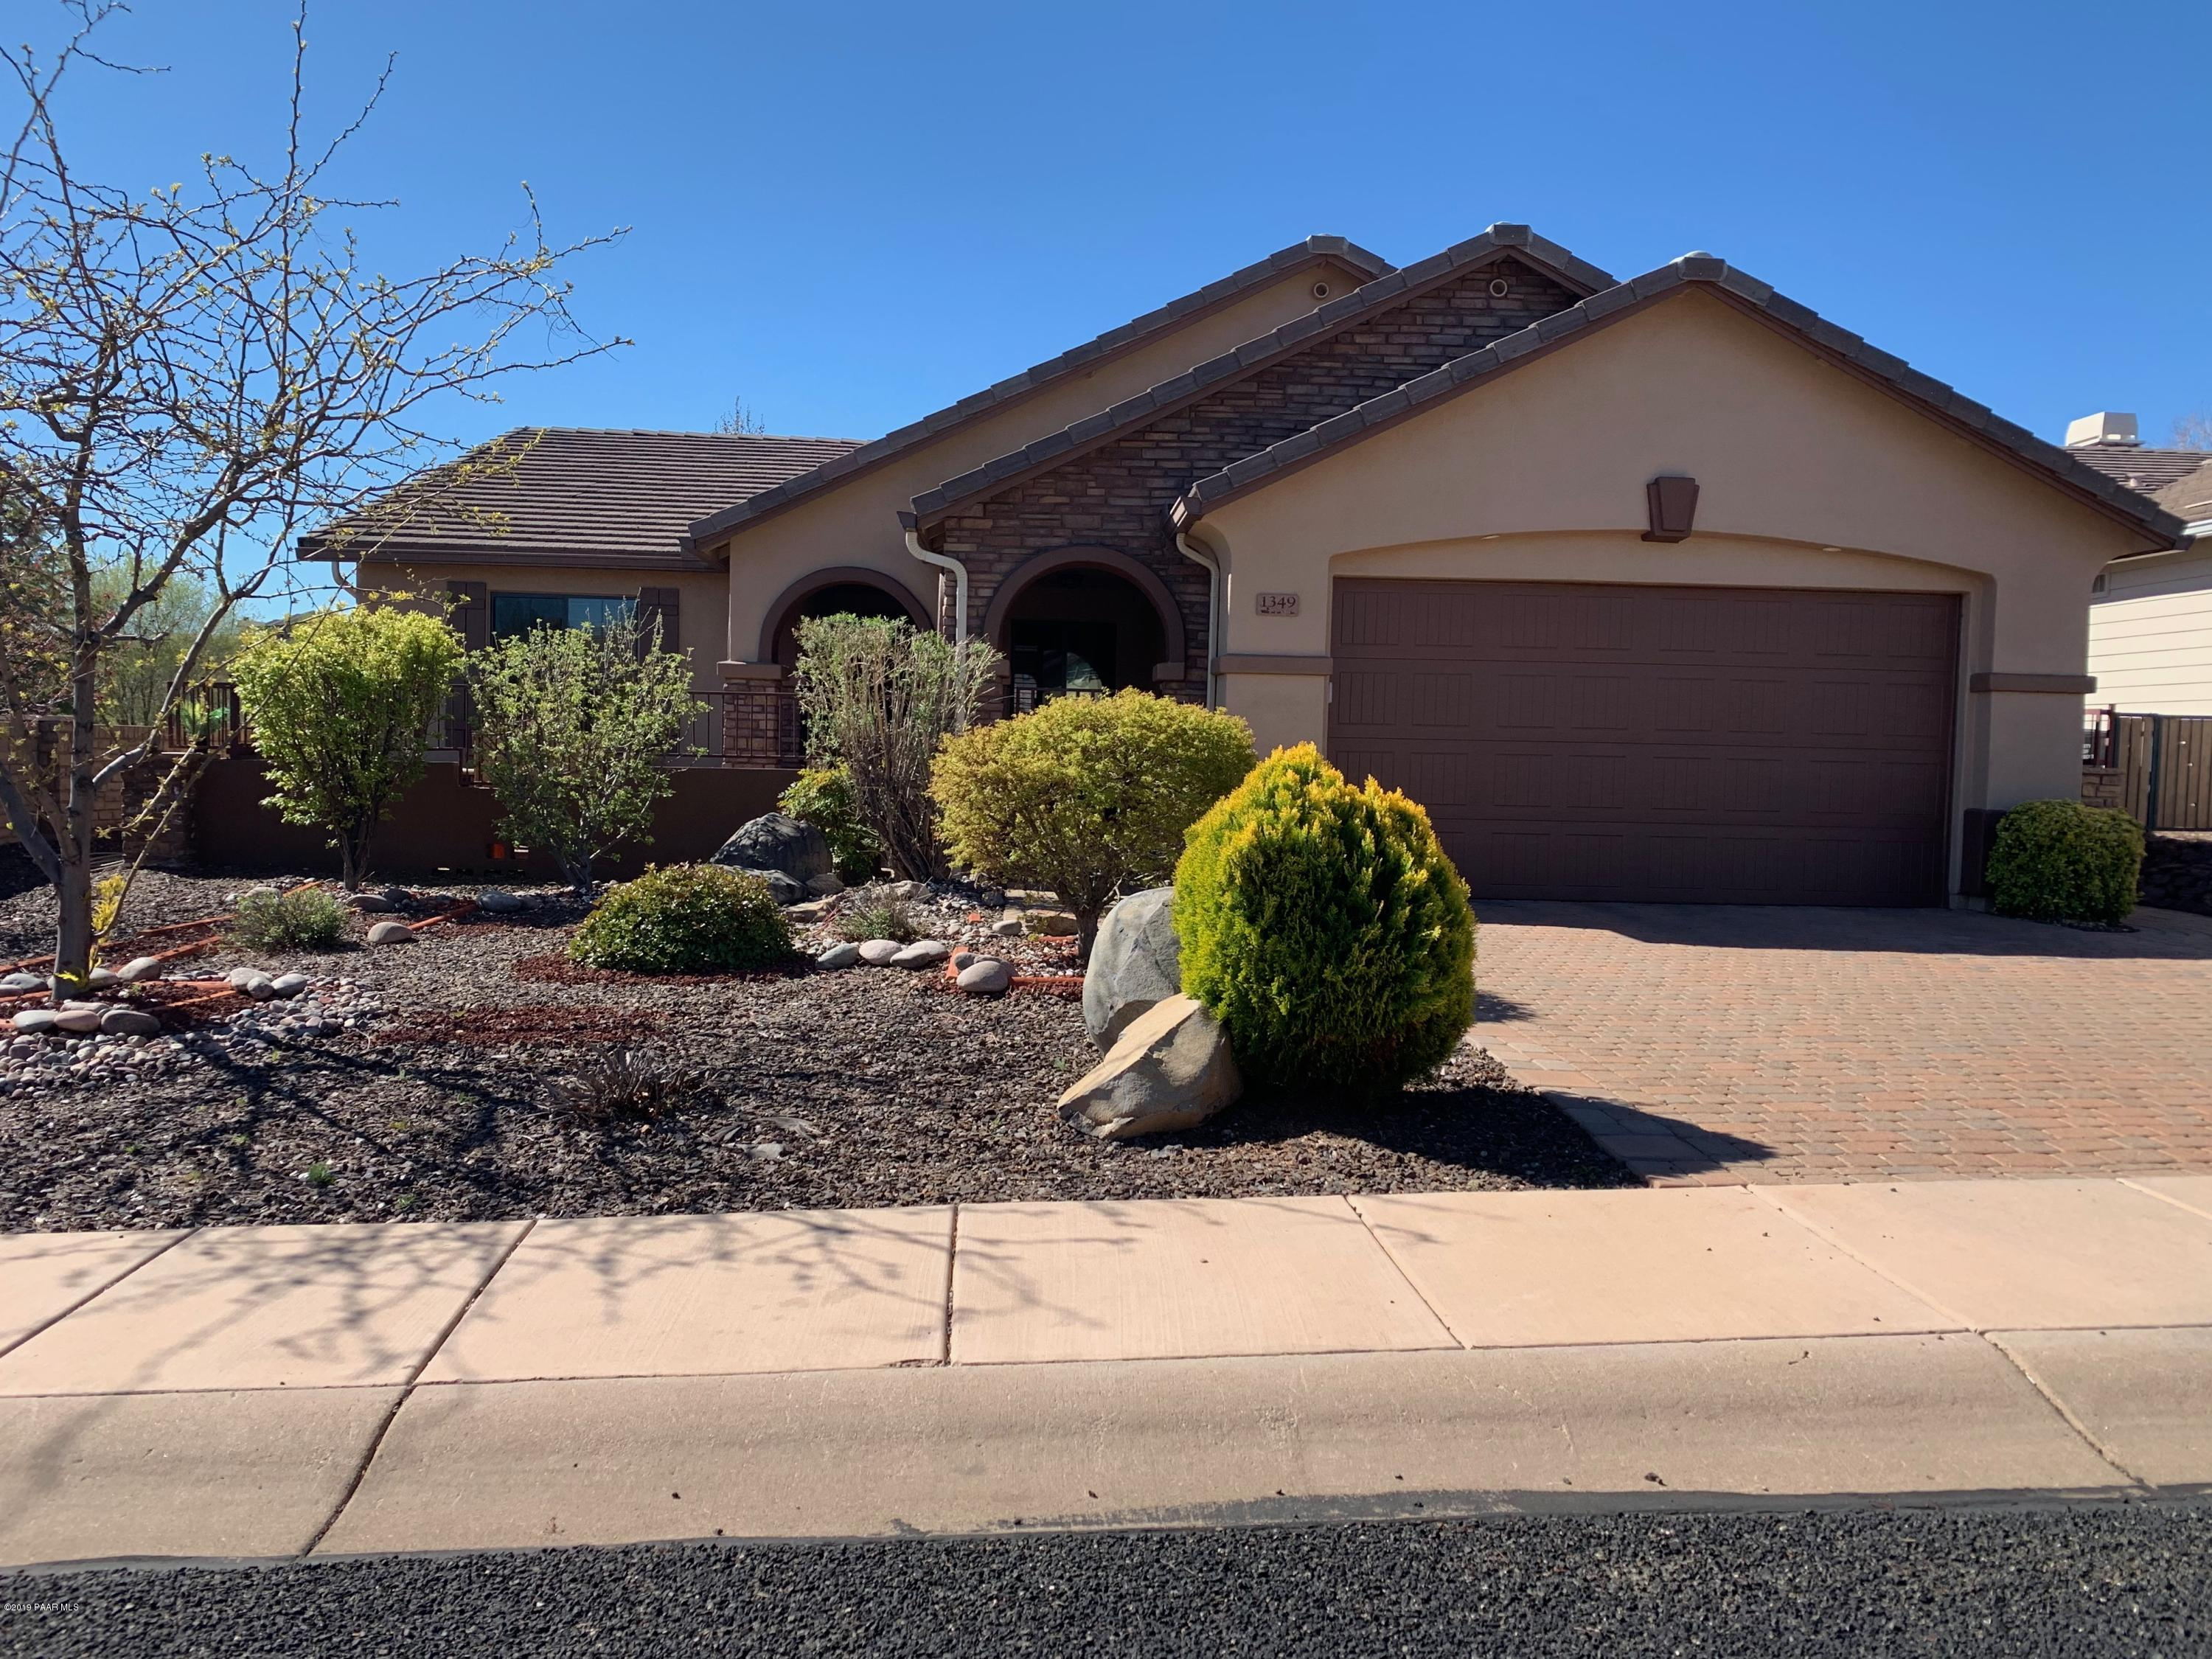 Photo of 1349 Sabatina, Prescott, AZ 86301